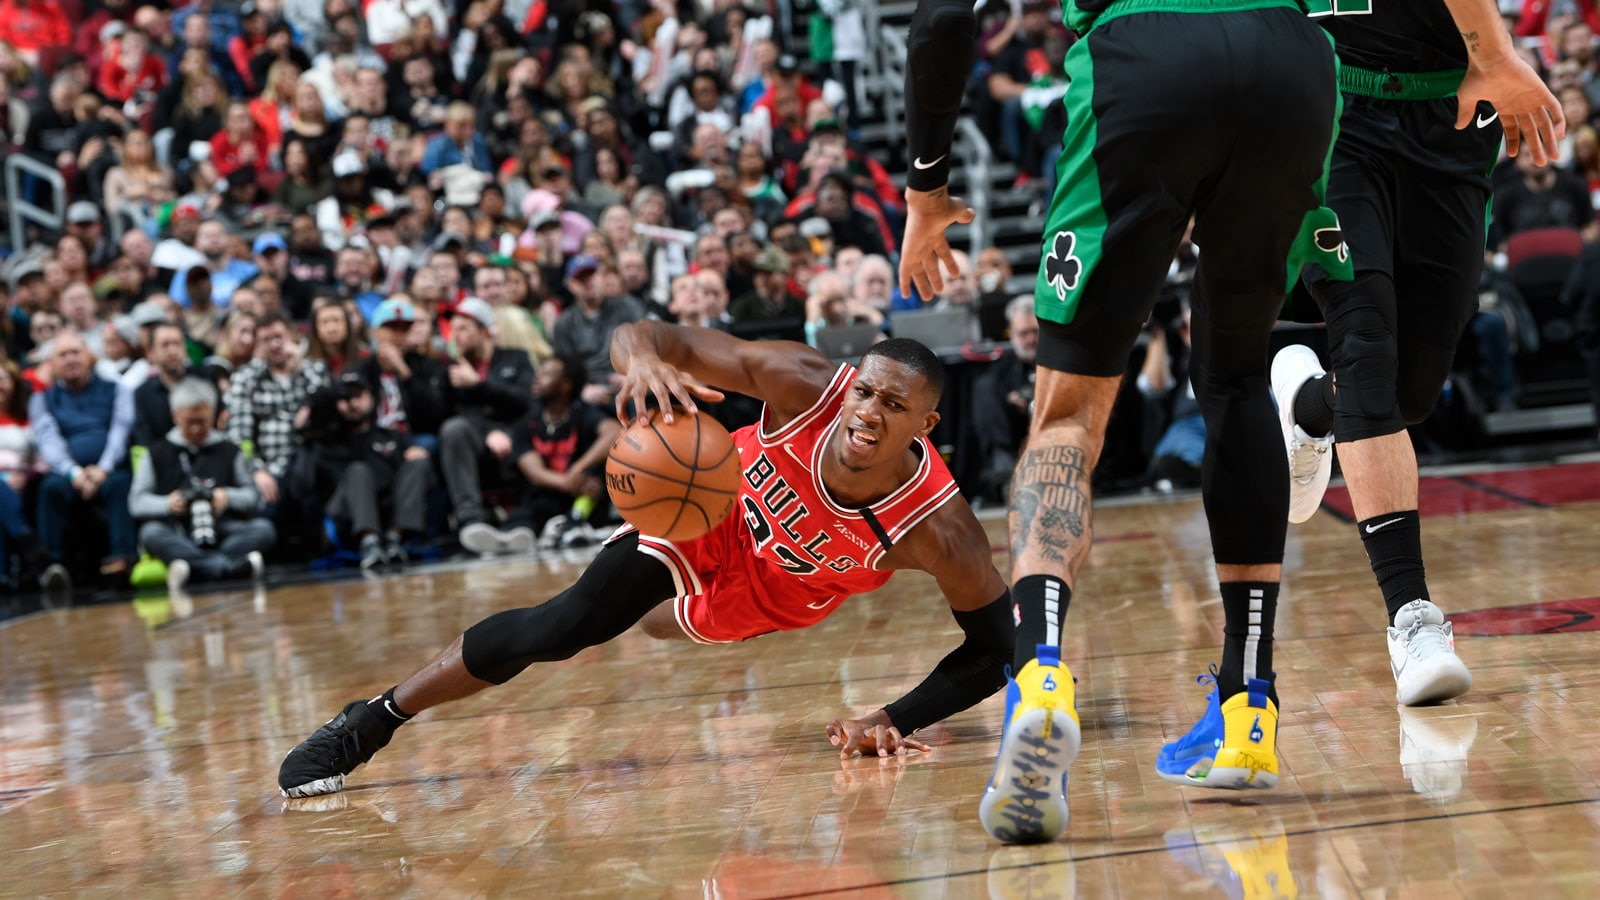 Kris Dunn hustles for the ball against the Celtics